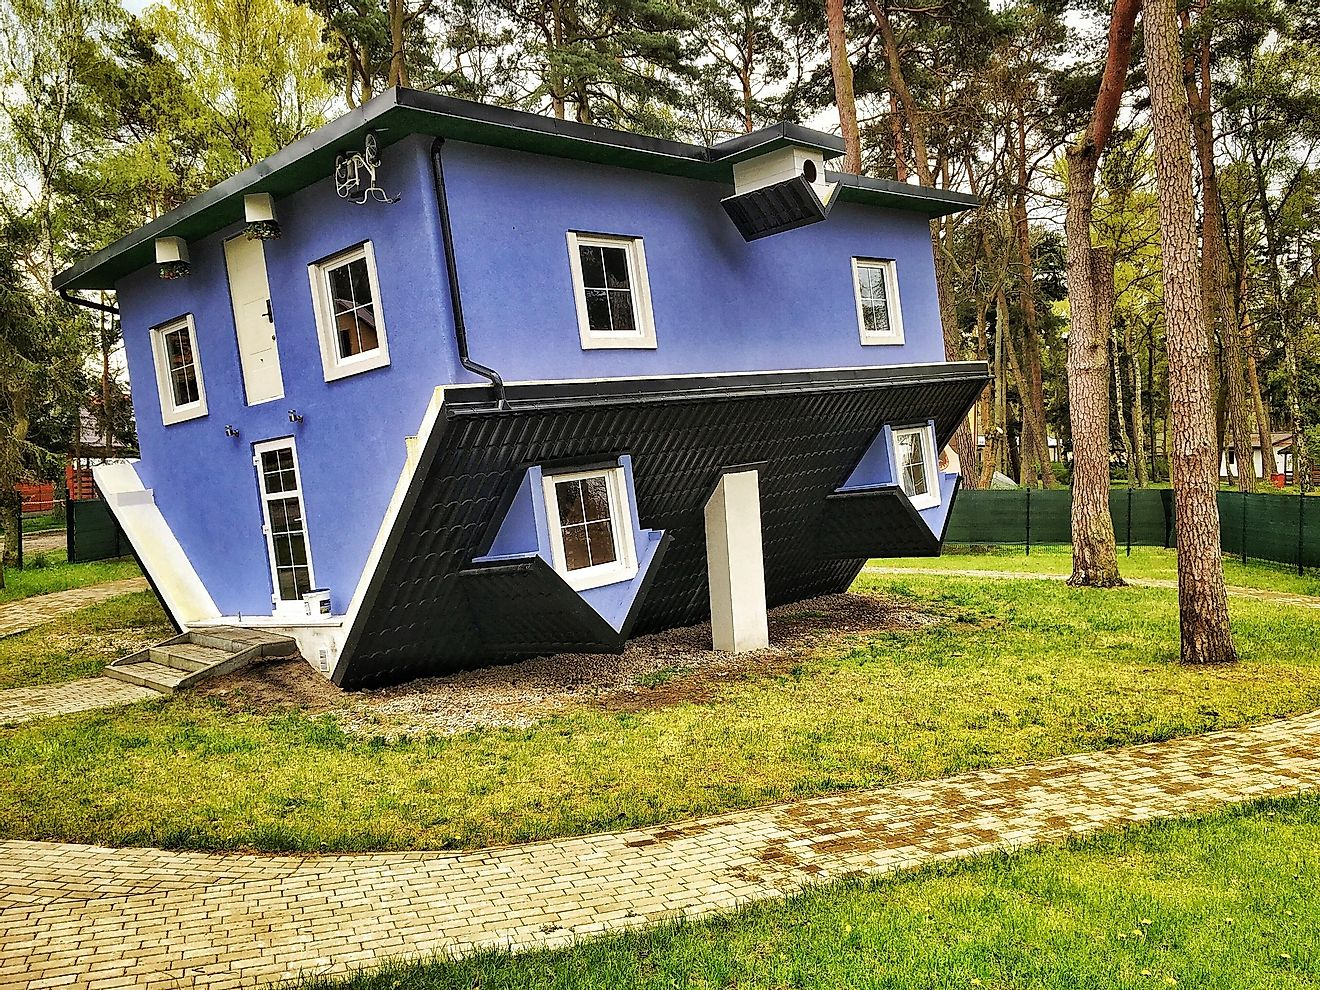 Upside-down houses often make visitors feel dizzy and disoriented. Editorial credit: Fotokon / Shutterstock.com